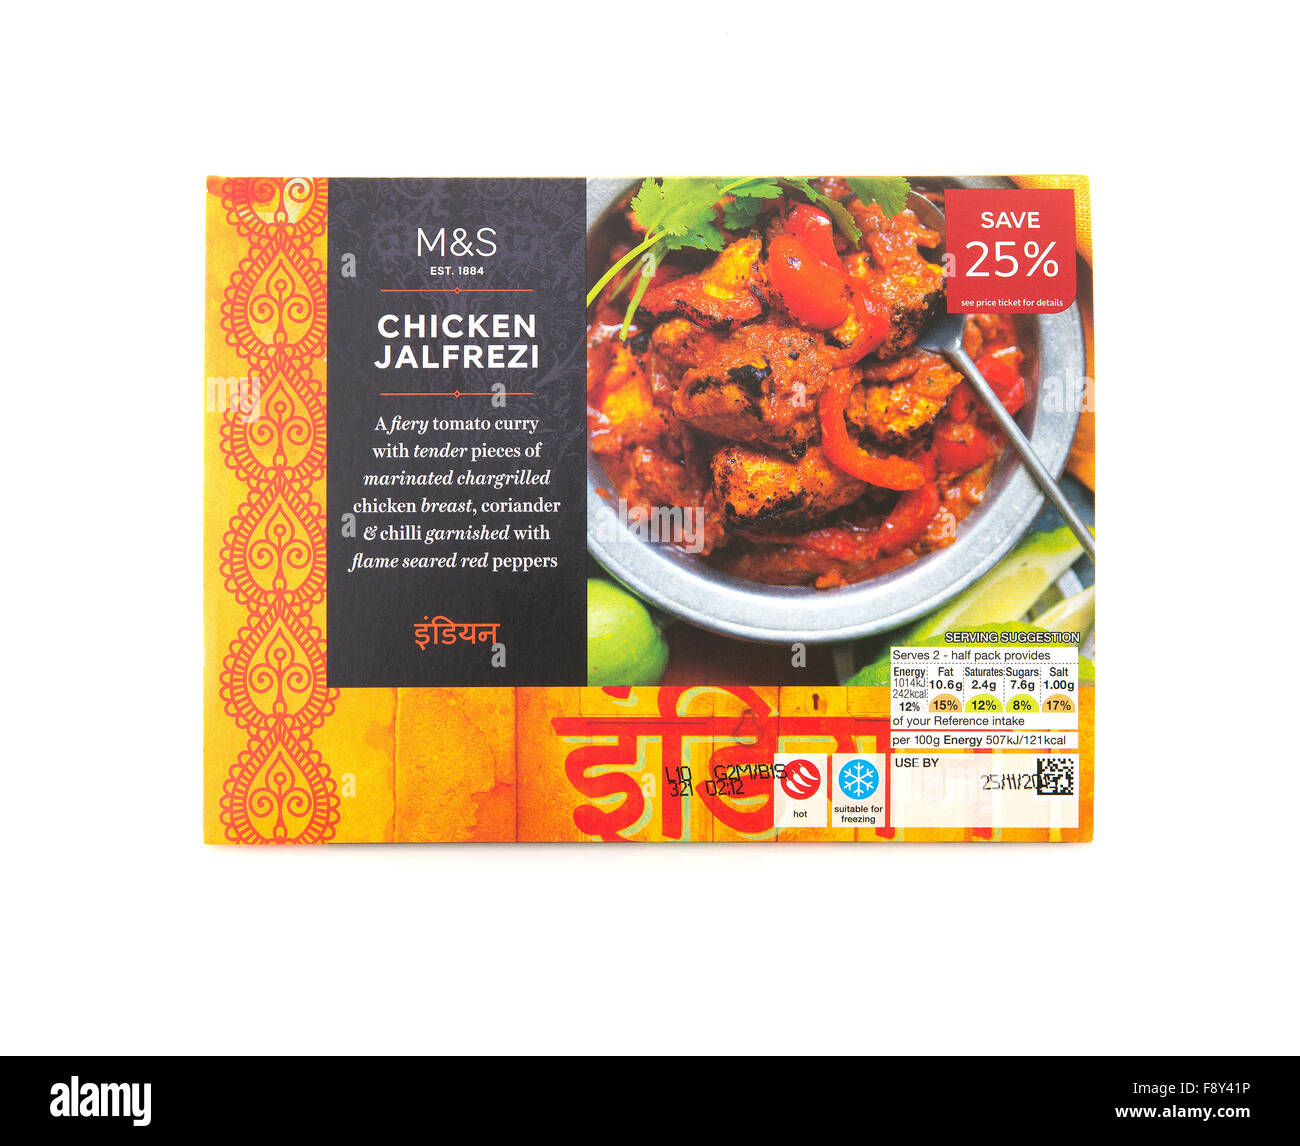 Marks and spencer chicken jalfrezi curry indian take away curry marks and spencer chicken jalfrezi curry indian take away curry on a white background forumfinder Gallery